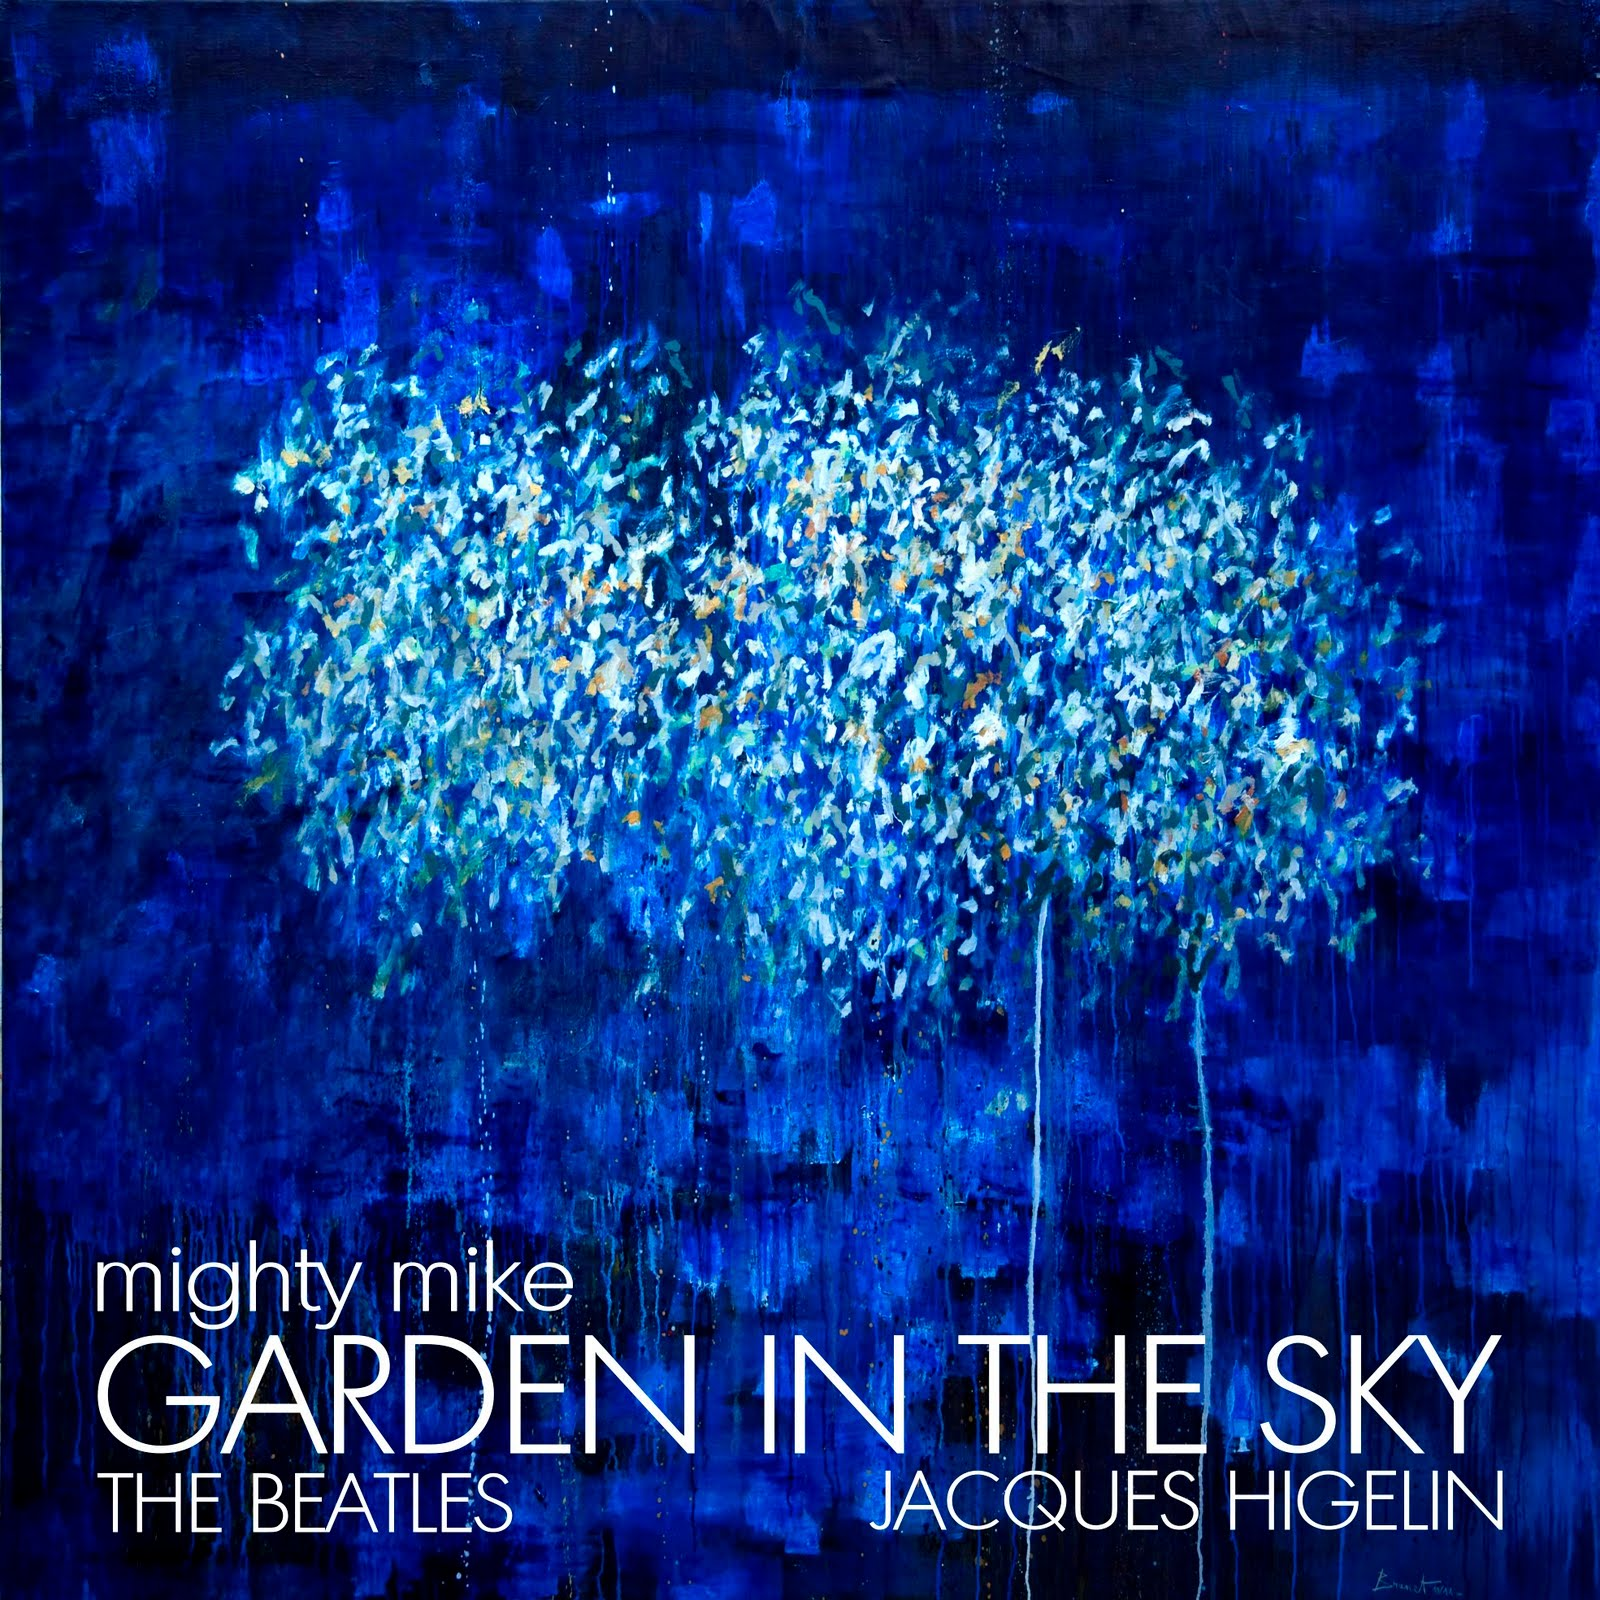 Garden in the sky (The Beatles / Jacques Higelin) (2011)